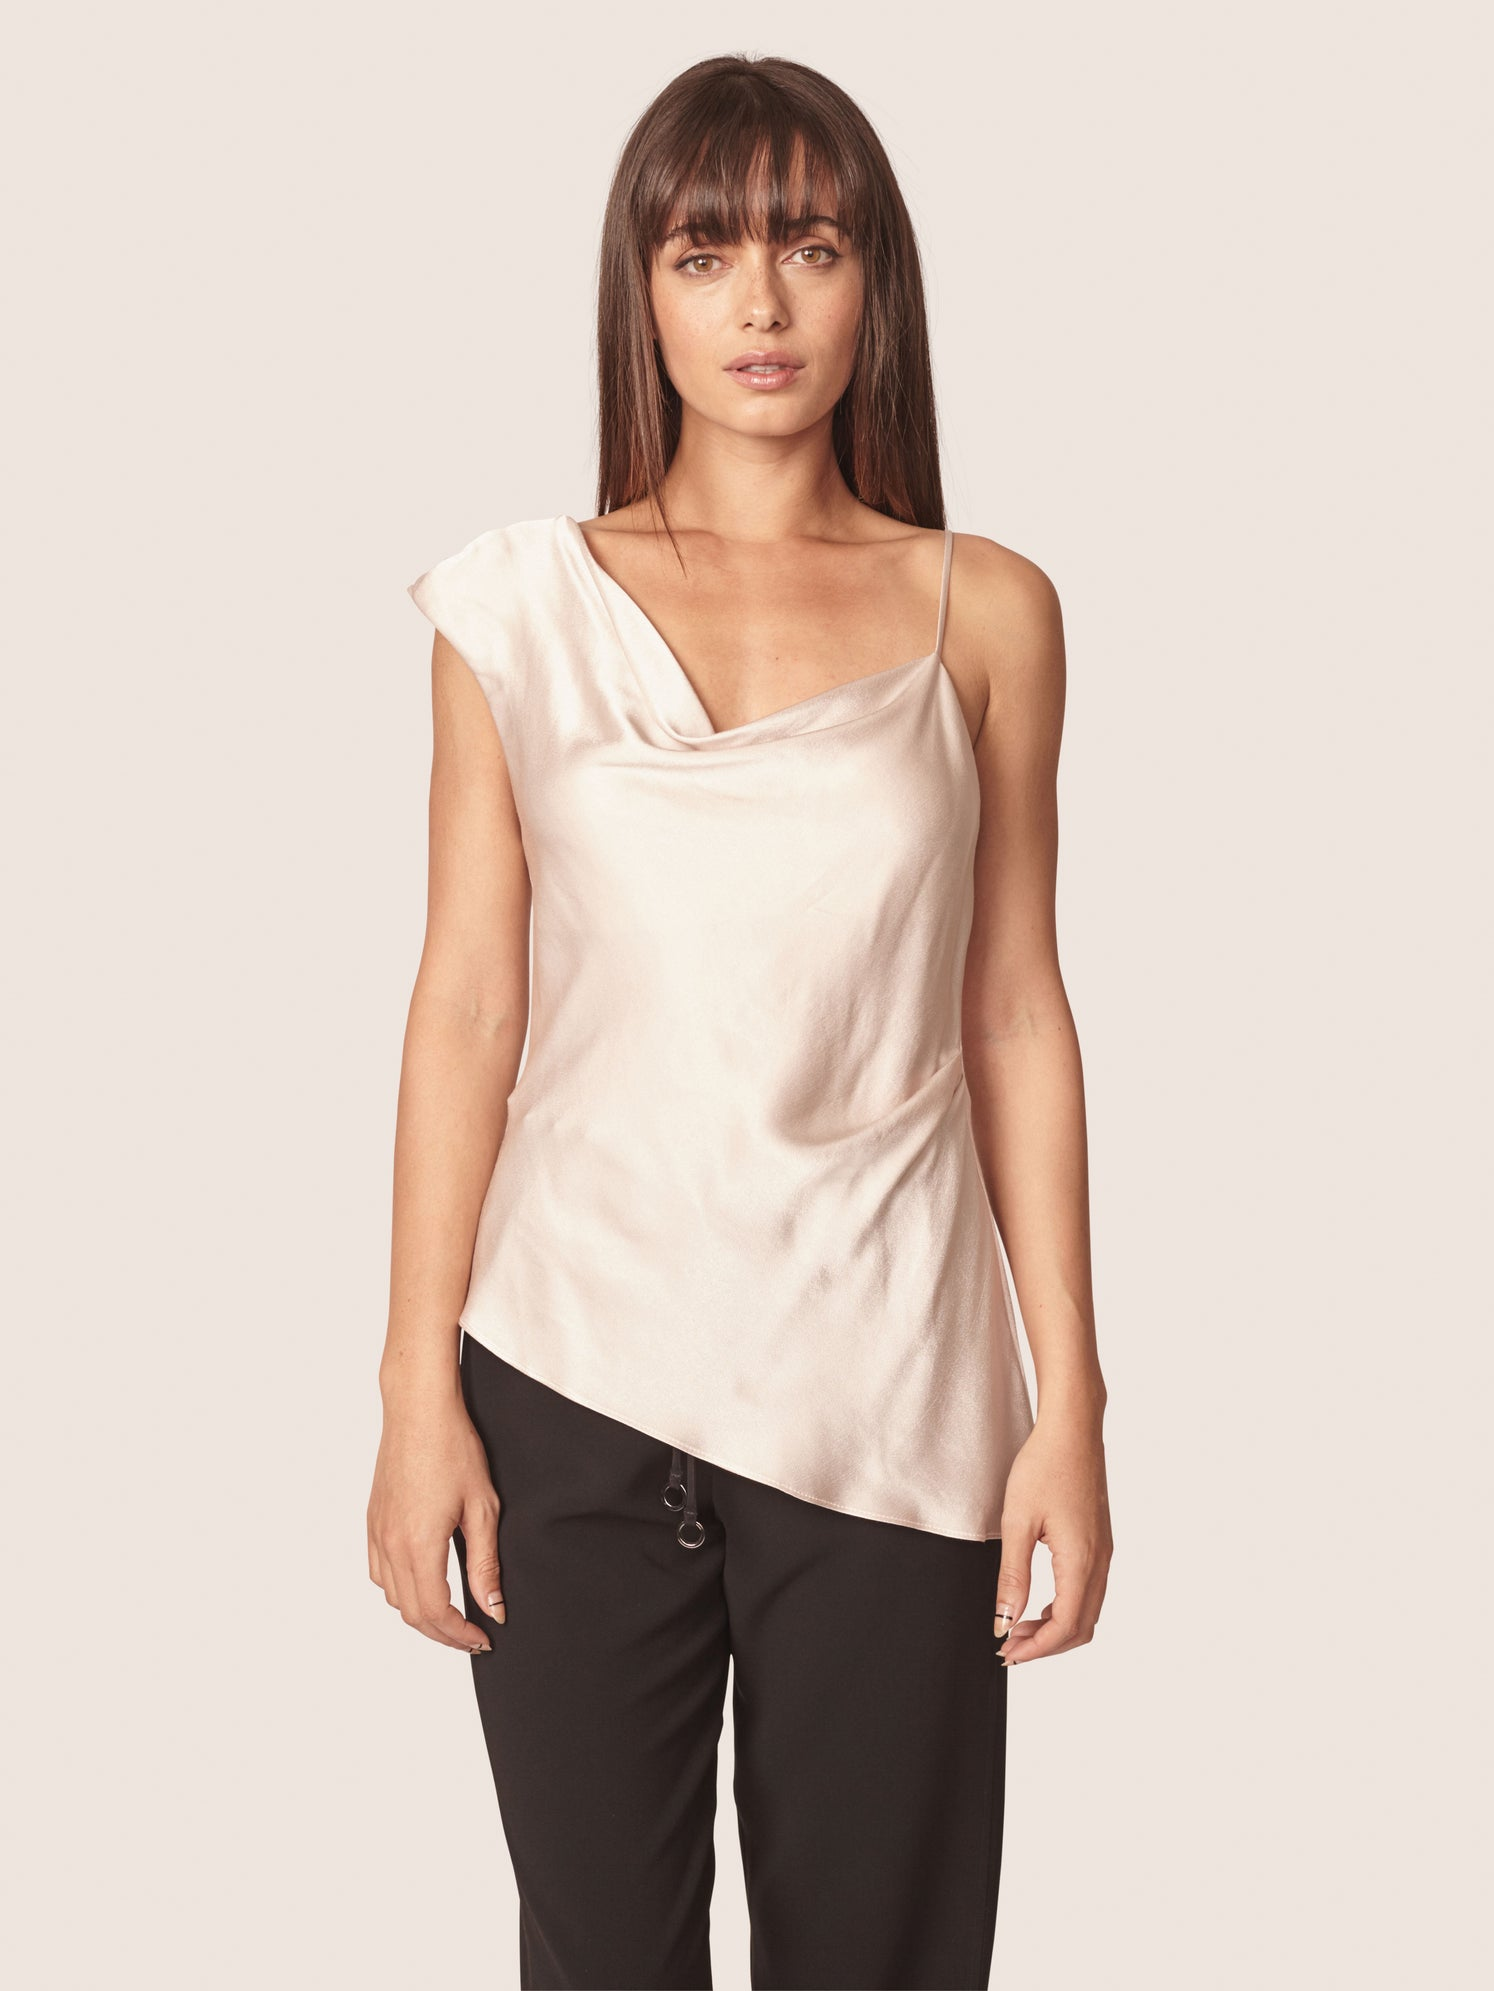 Satin one shoulder top with an asymmetrical hem and cowl neckline